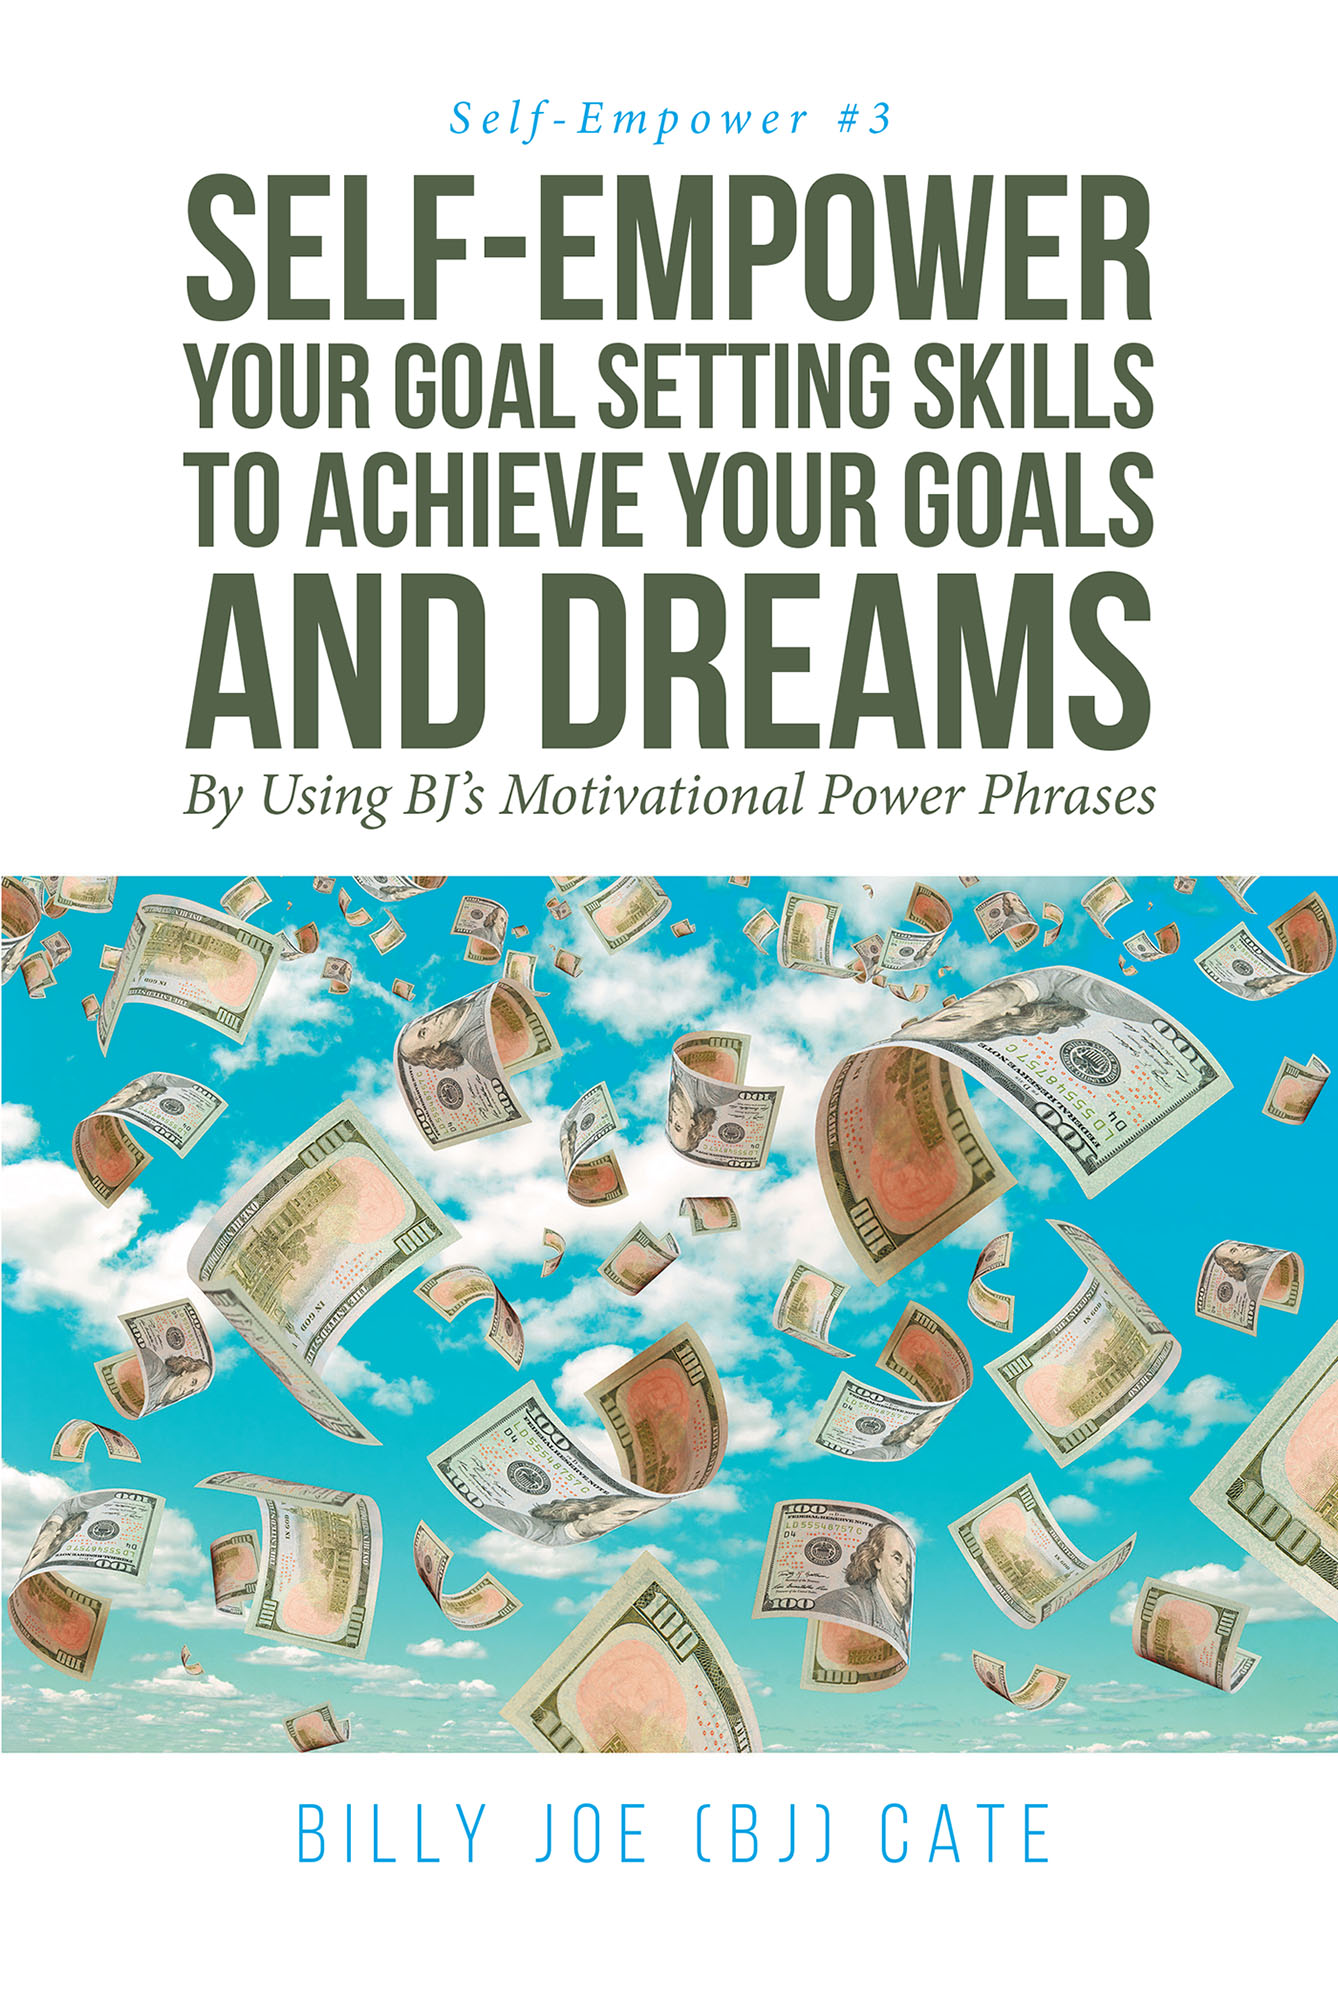 Billy Joe (BJ) Cate's New Book 'Self-Empower Your Goal Setting